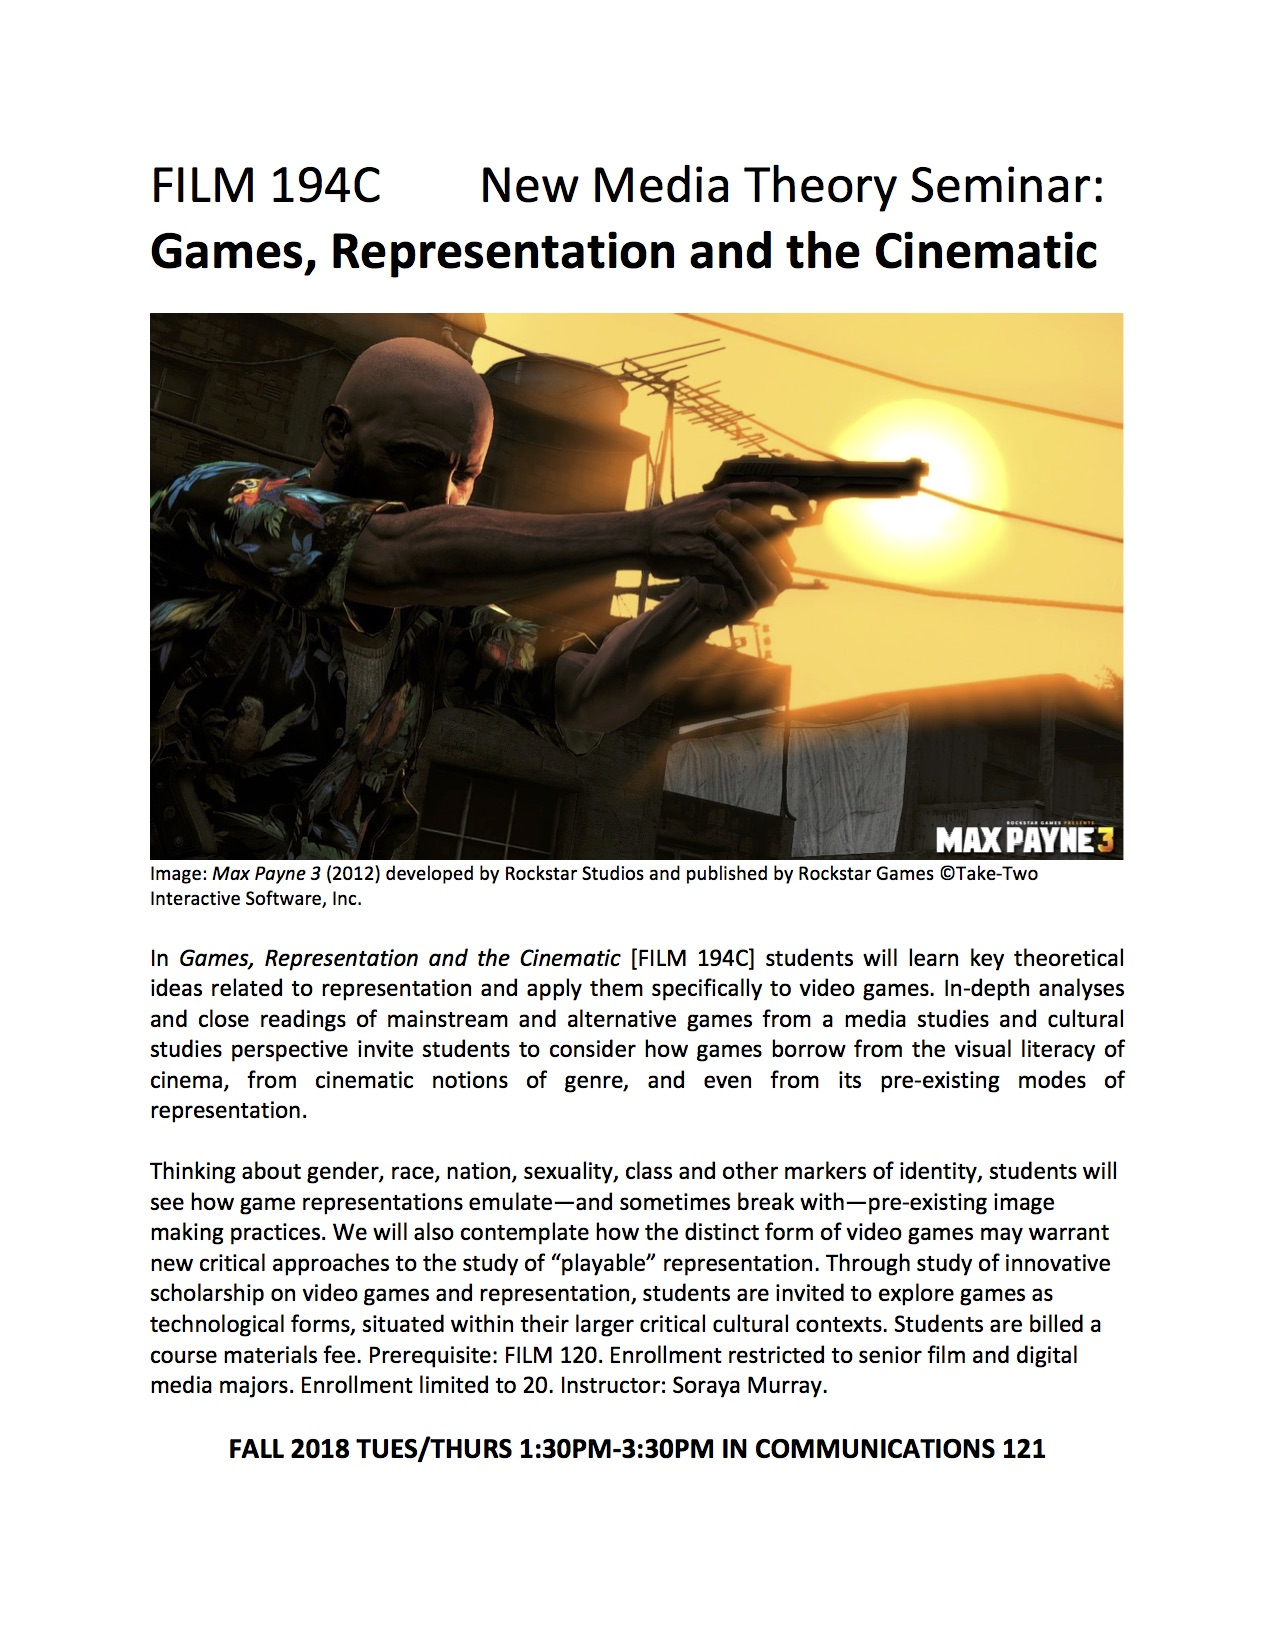 course flyer for FILM 194C New Media Seminar Games Representation and the Cinematic